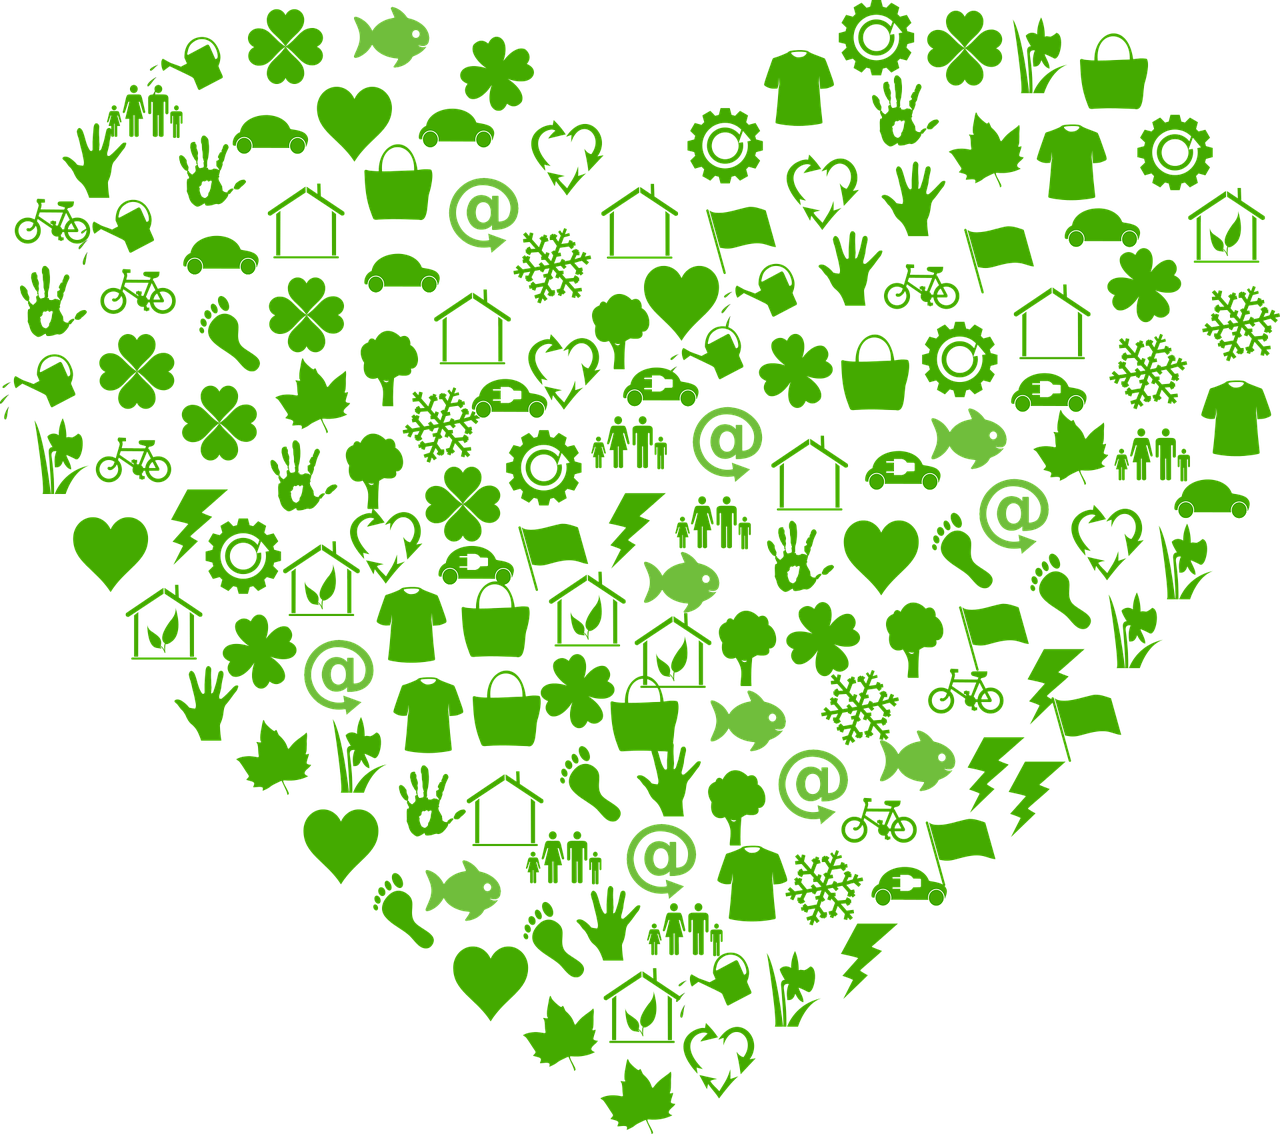 Ecology Ecological Heart - Free vector graphic on Pixabay